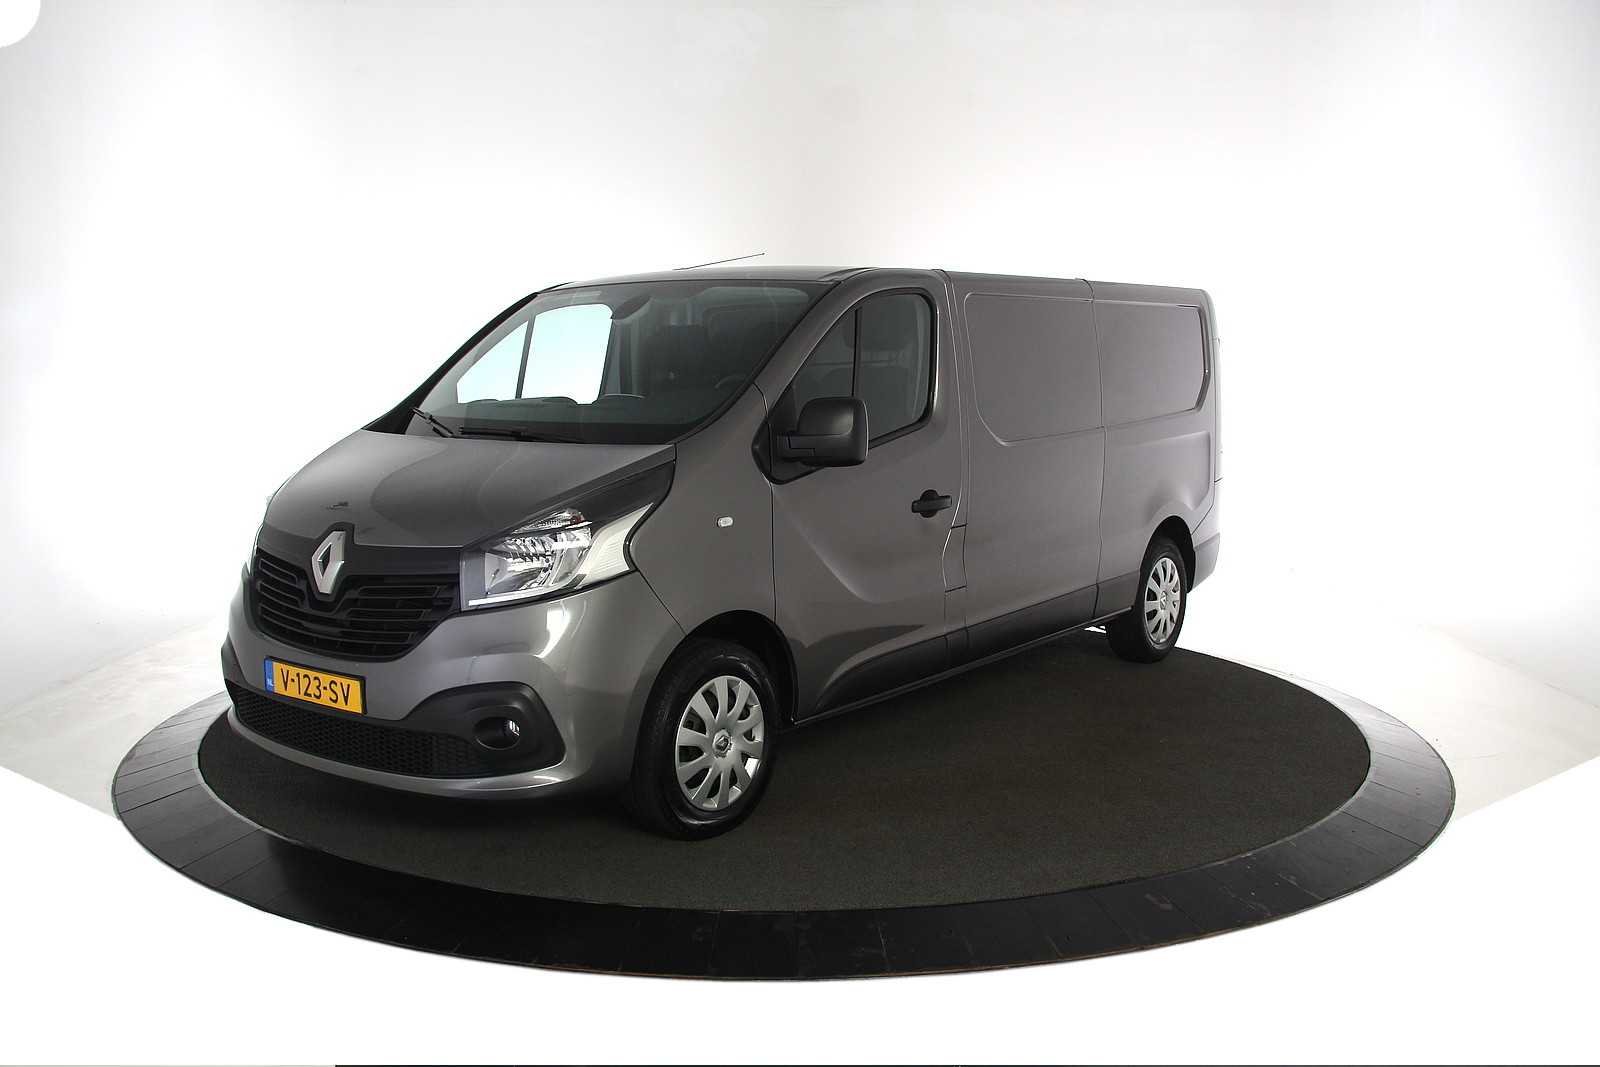 Renault Trafic 1.6 dCi T29 120PK L2H1 Luxe